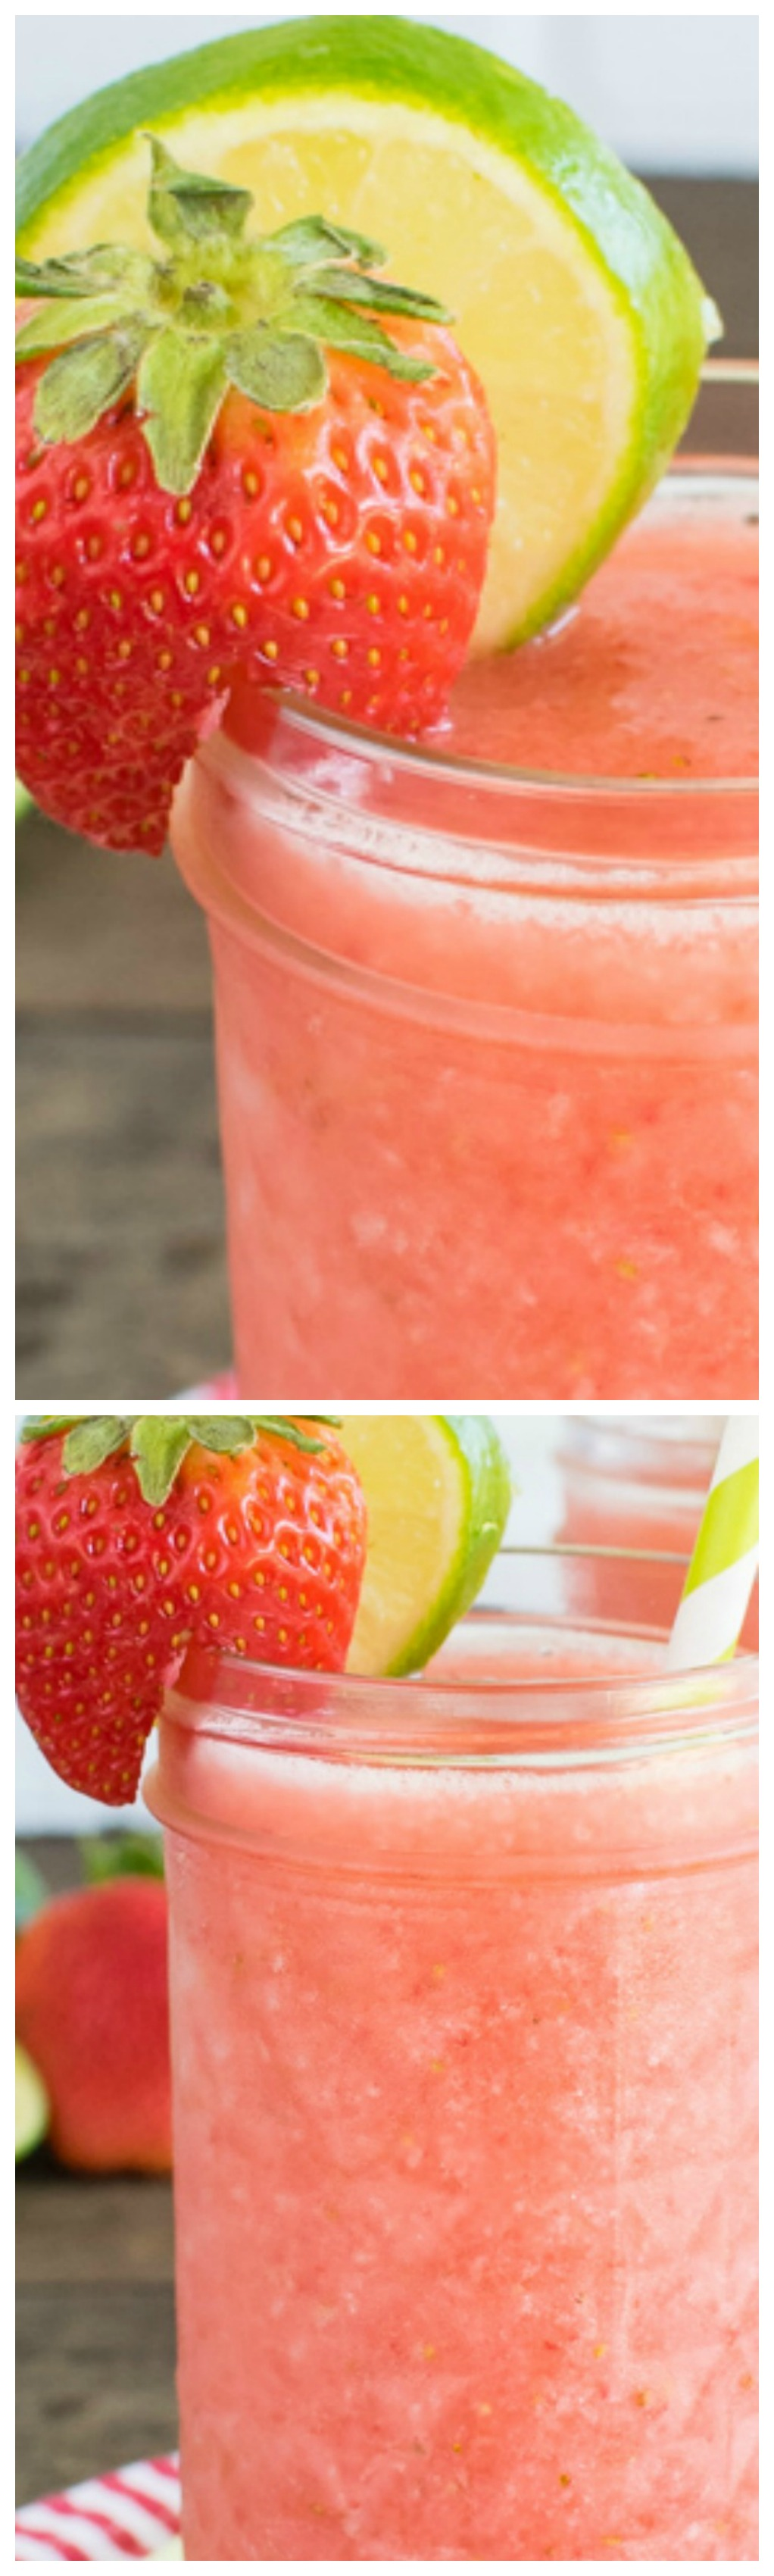 Strawberry Limeade Slushies ~ The perfect drink to enjoy while you relax this weekend... Fresh berries and juice come together quickly in the blender with some ice.